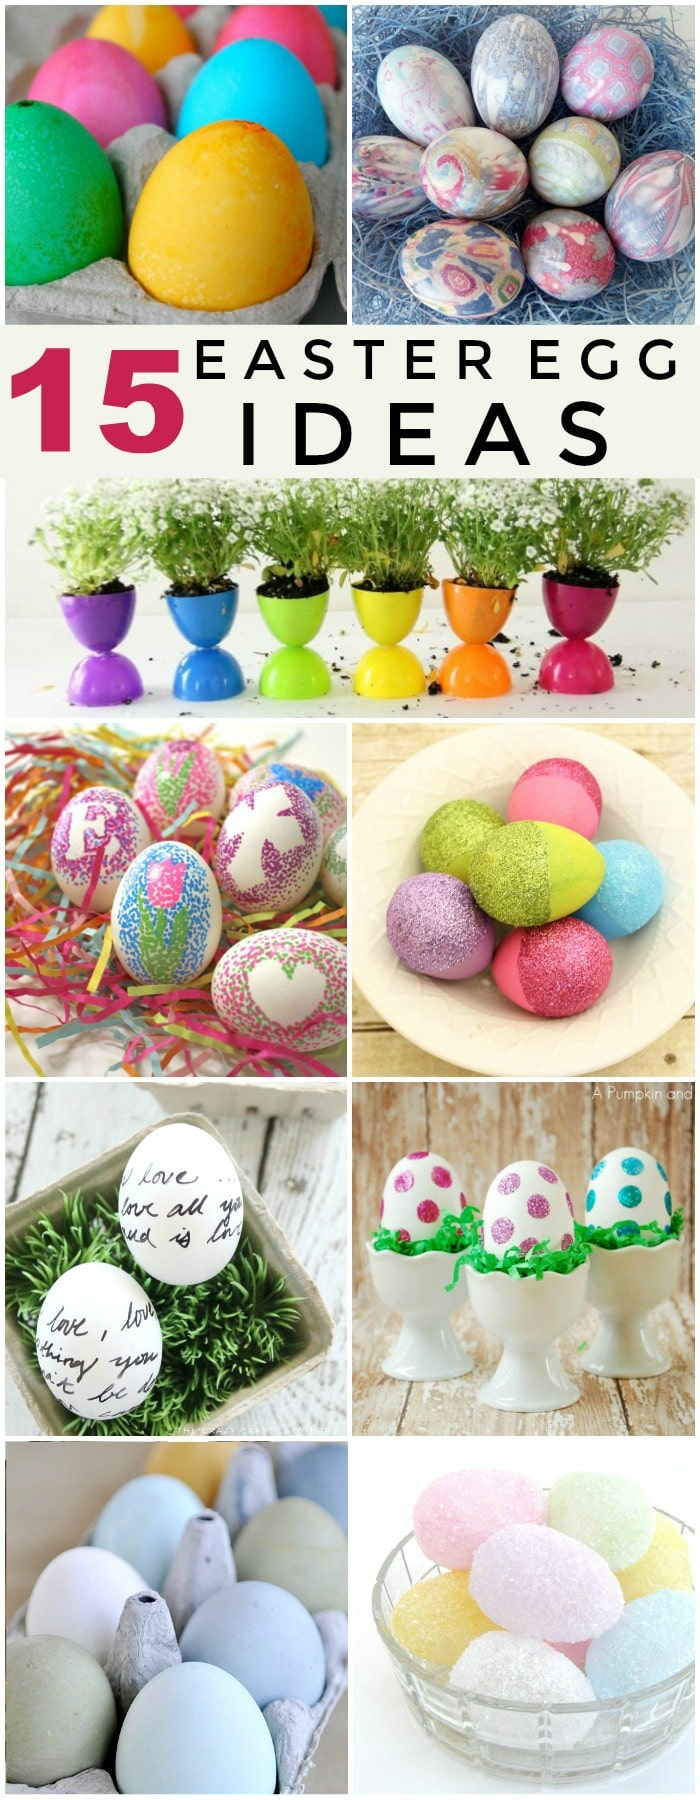 Creative Easter Eggs - 15 Easter Egg Decorating Ideas